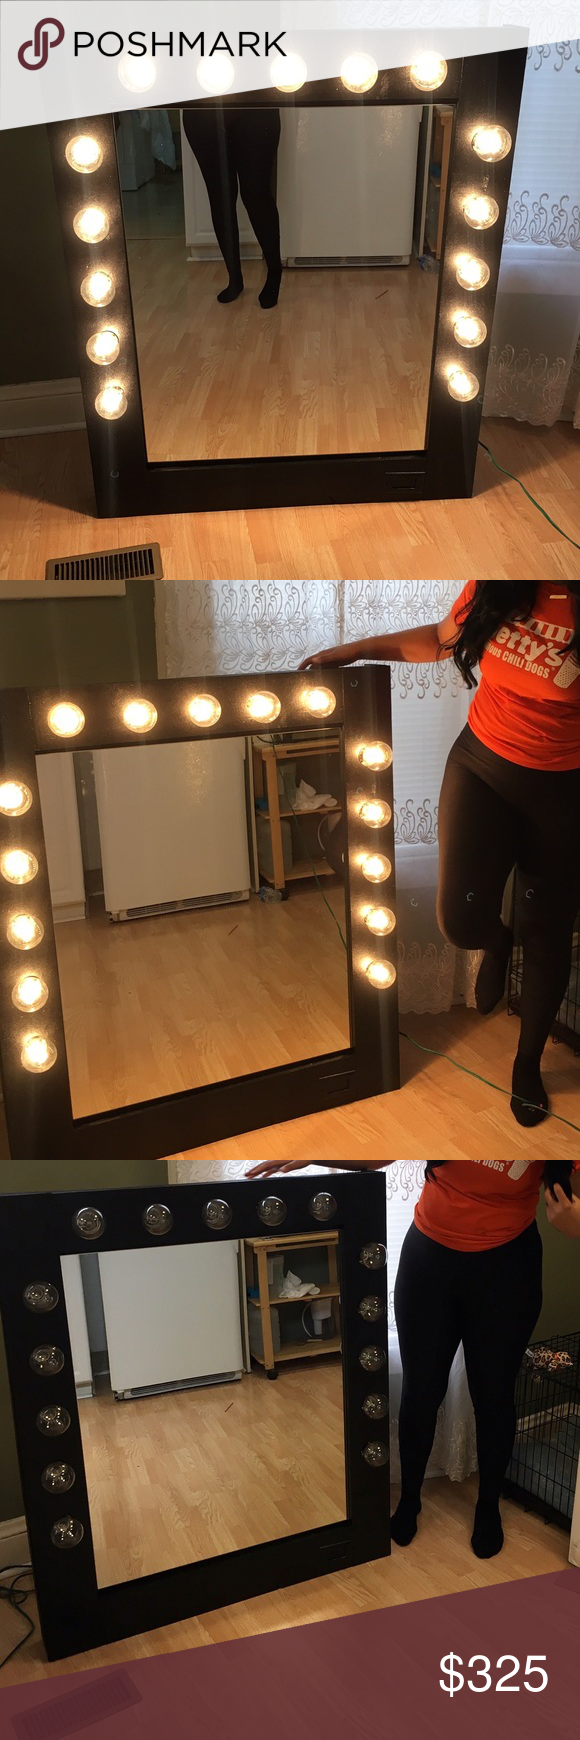 Black Vanity Mirror With Hollywood Lights This Is An Amazing 4fy Tall That Can Sit On Any Flat Surface And Come All Of The Bulbs Already